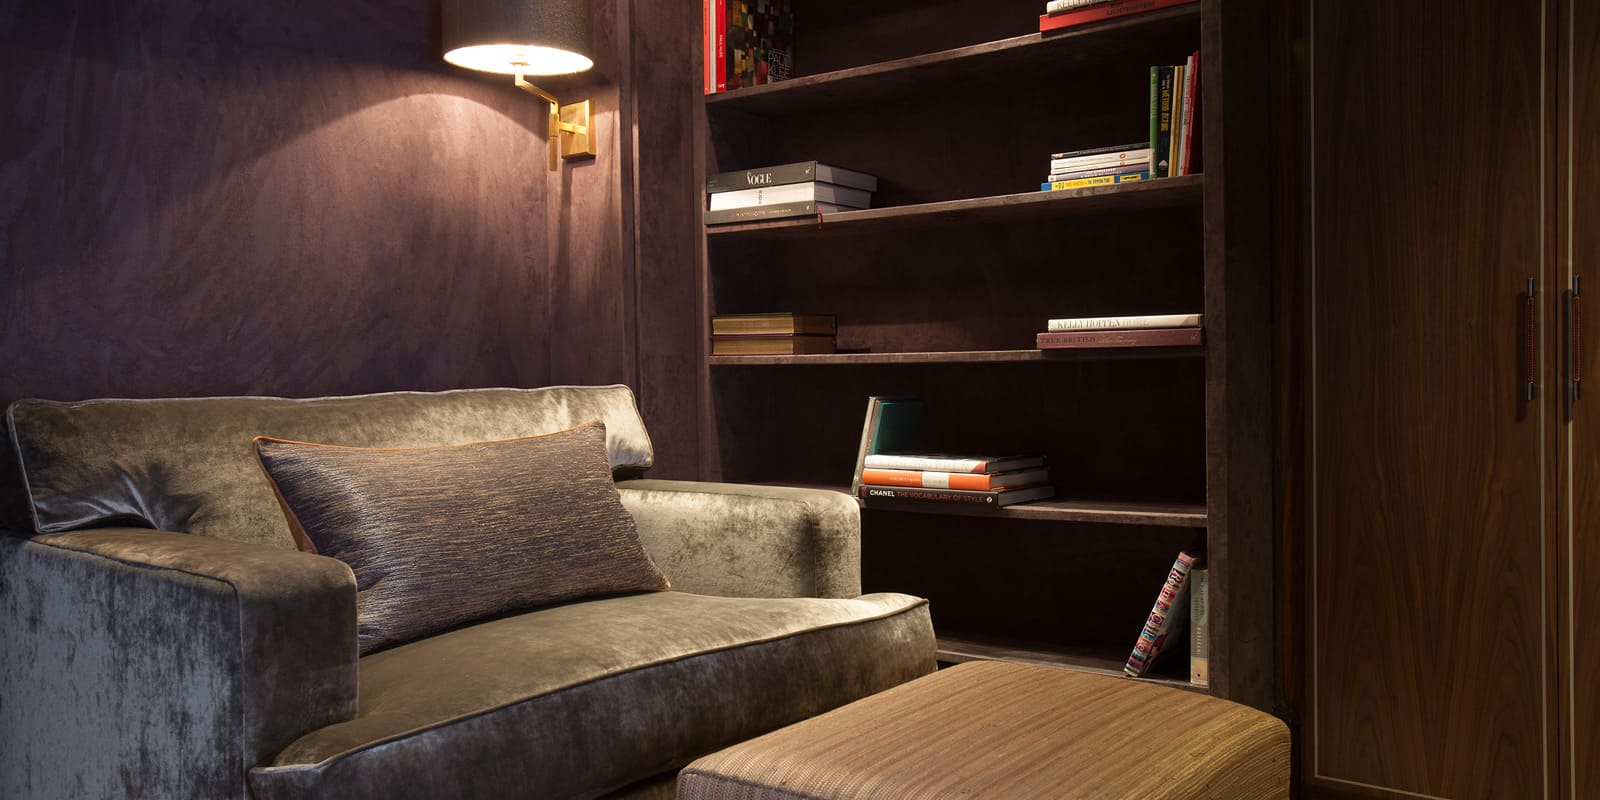 Cozy reading corner and wooden shelves